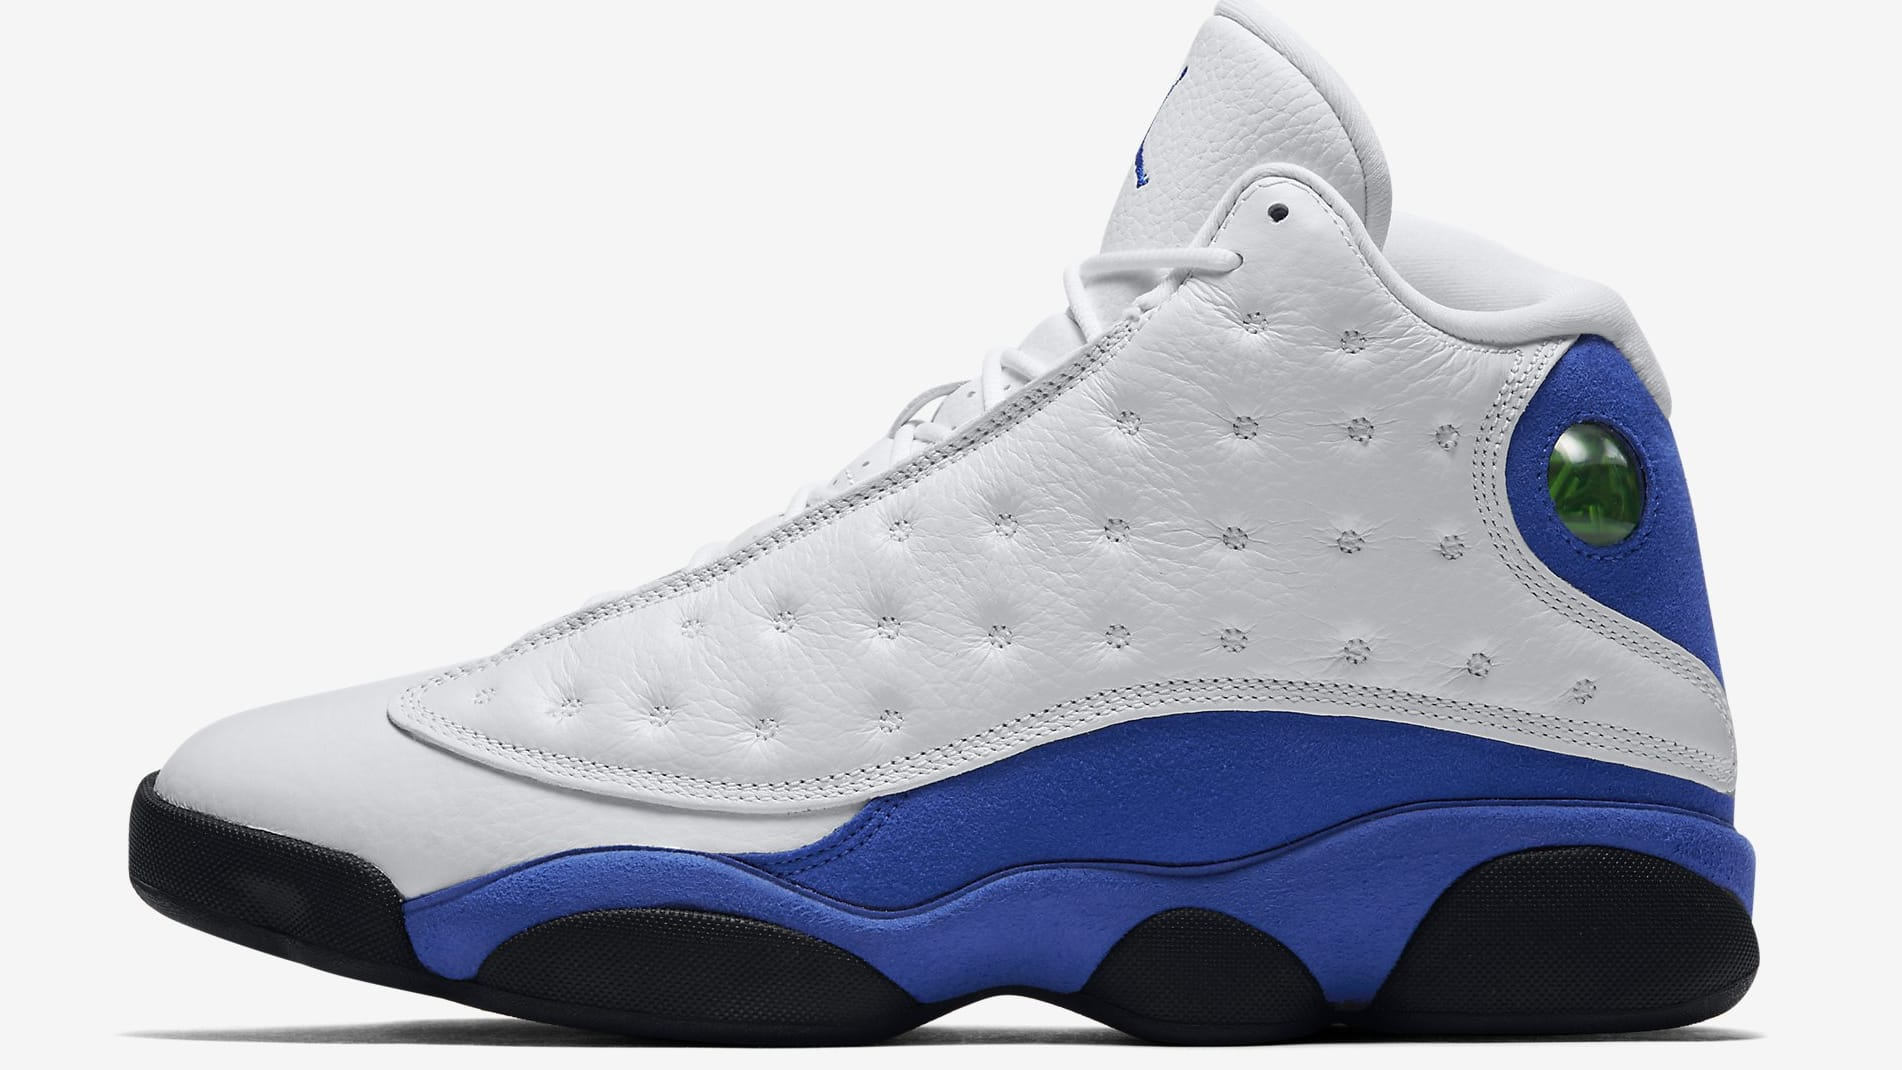 Best Charming Air Jordan 13 Black White Blue f3349ihvu